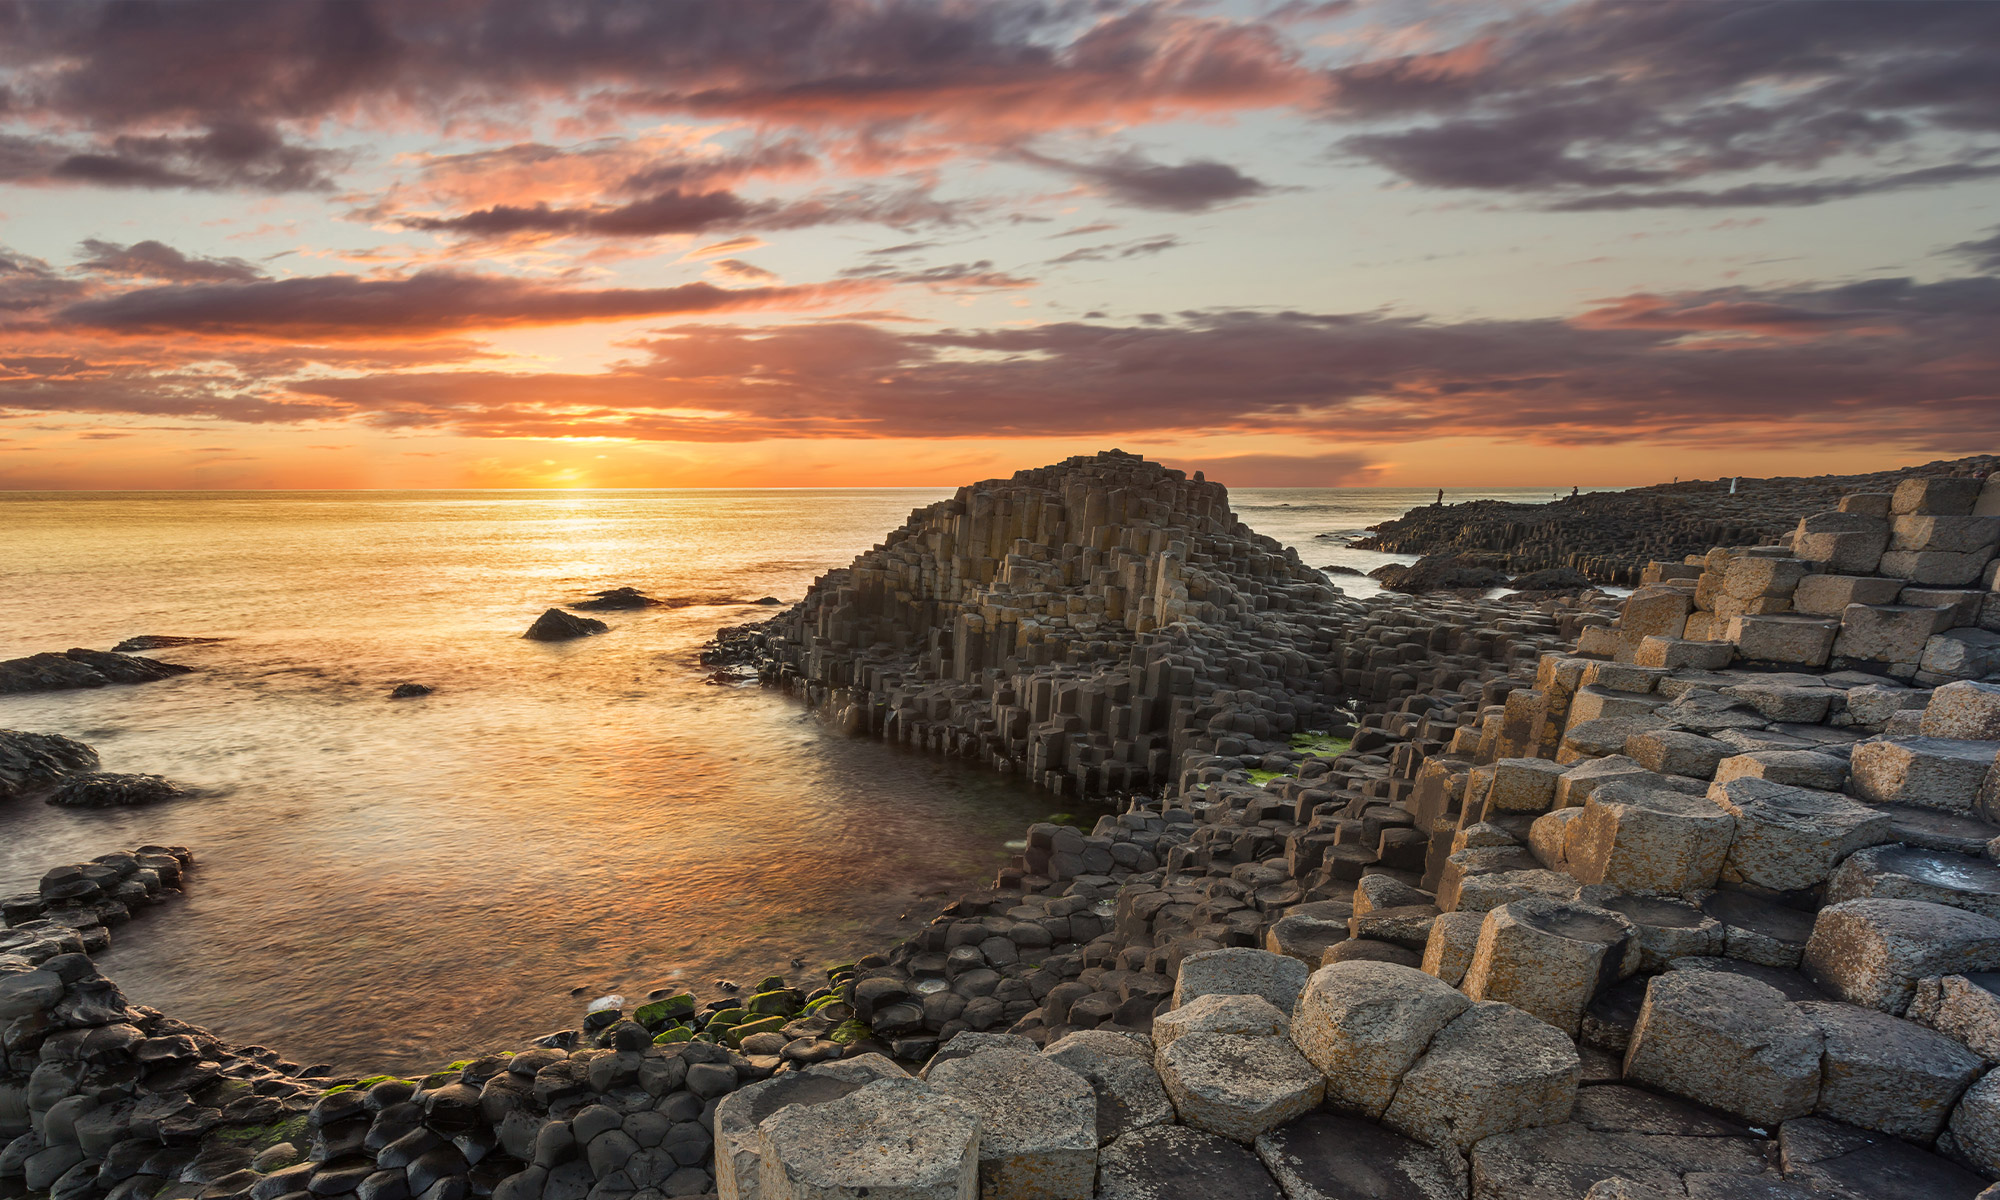 The Giant's Causeway bathed with evening sunset